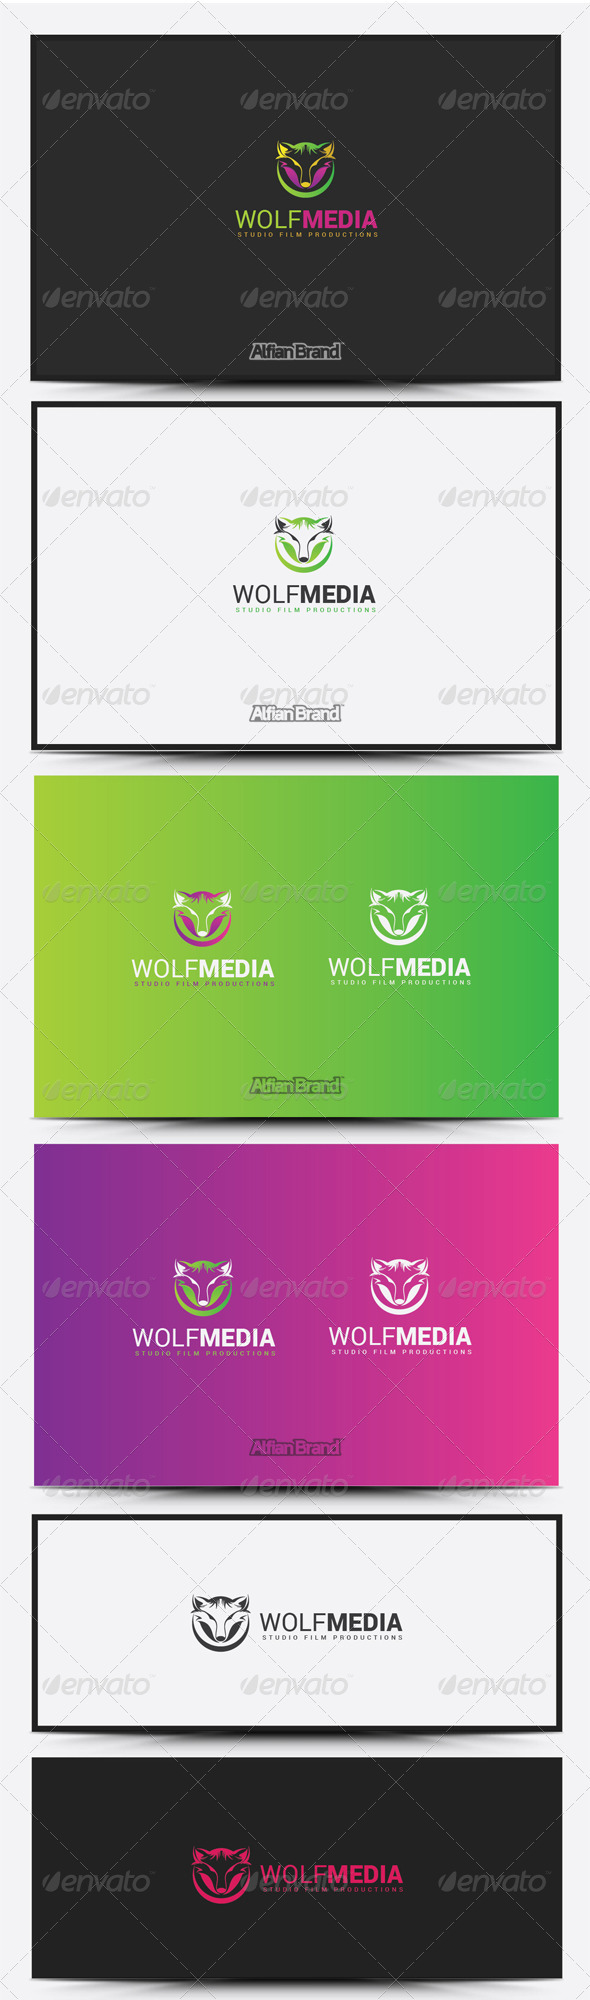 GraphicRiver Wolf Media Logo 8431084